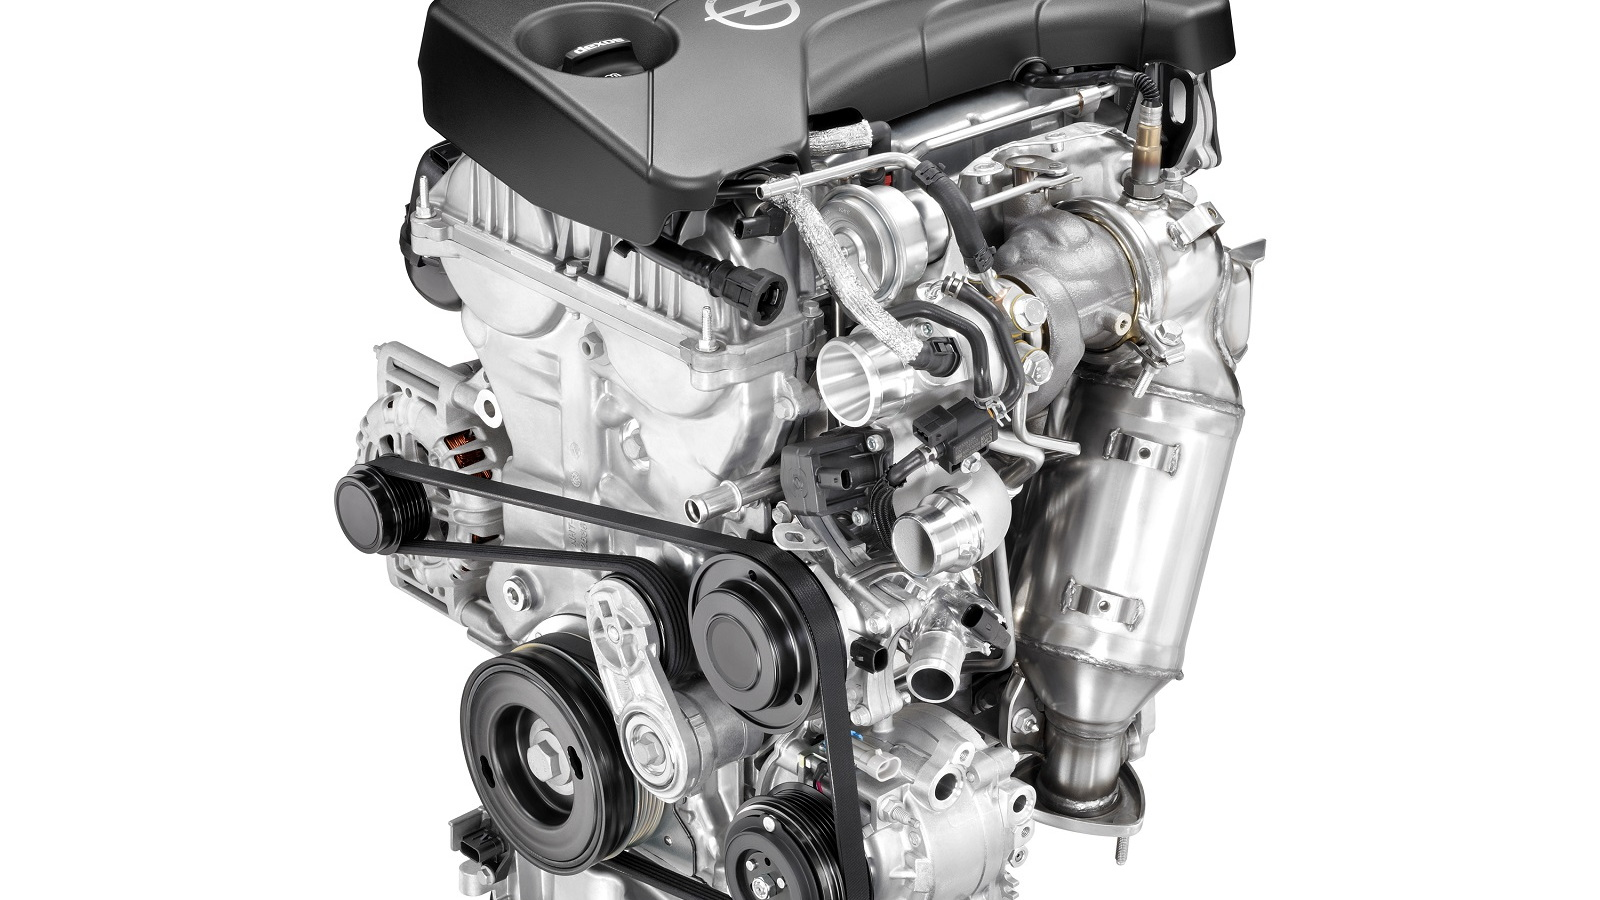 New GM 1.0-liter turbo Ecotec engine introduced for 2015 cars